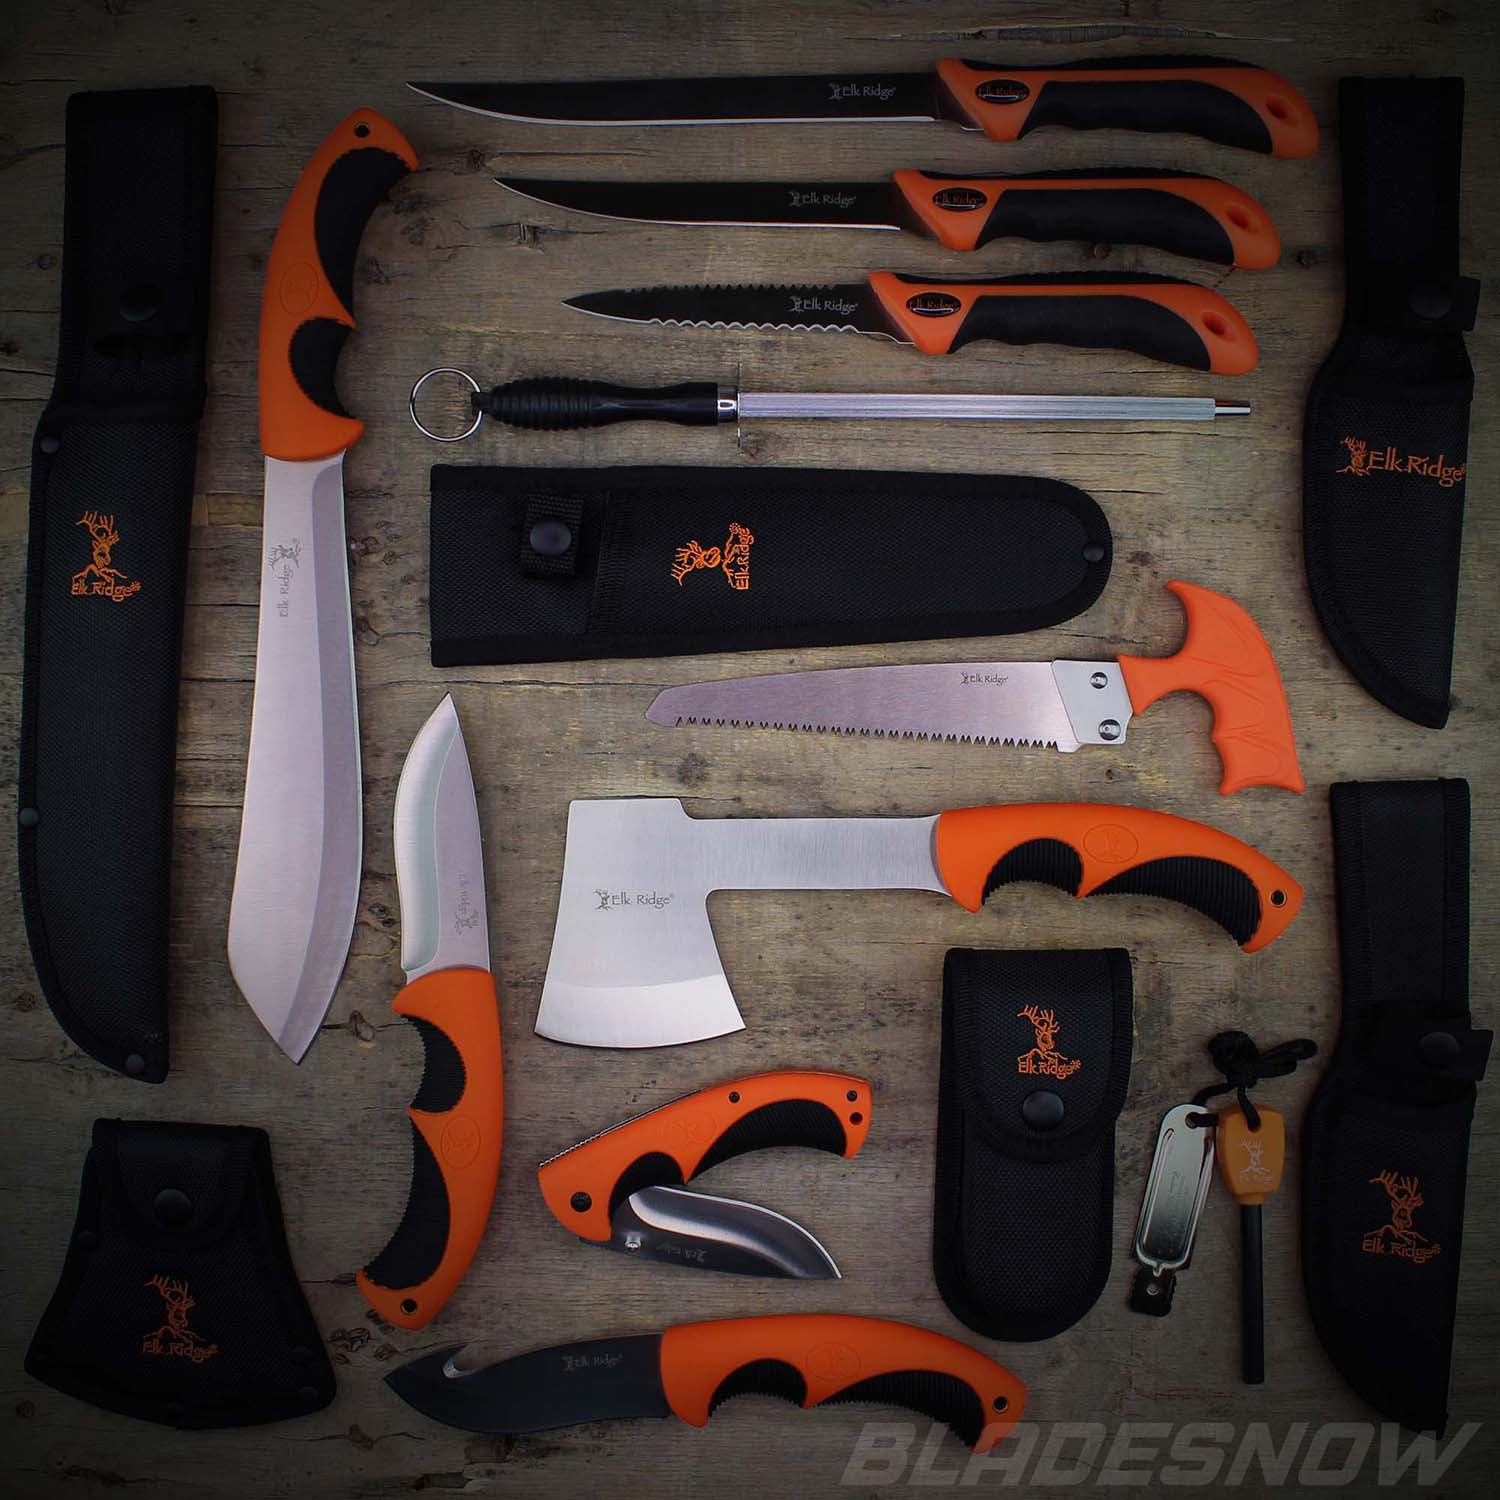 12pc Hunting, Camping, Survival Knife Set in Orange Color